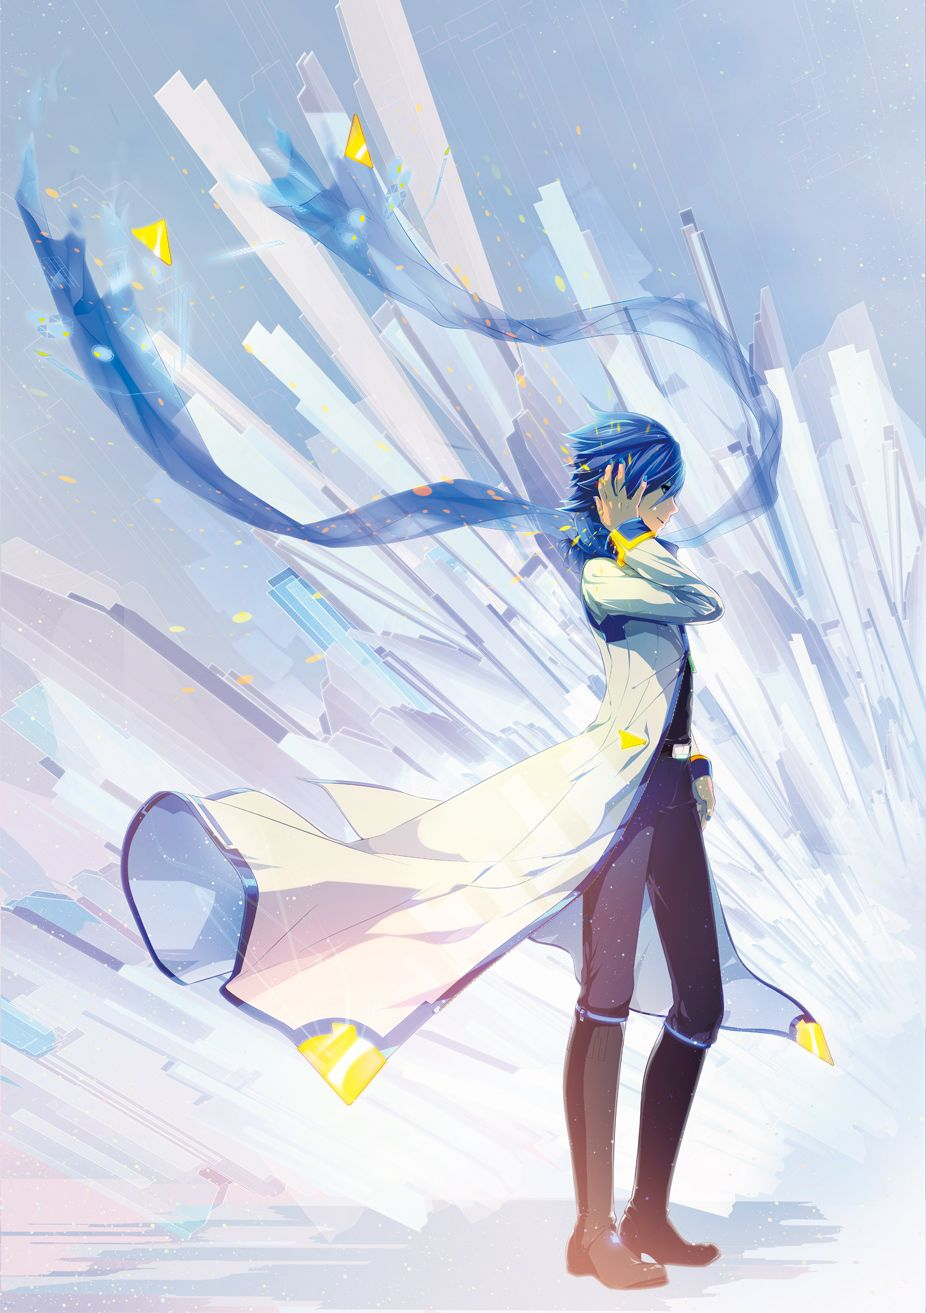 Kaito Shion Vocaloid kaito 初音ミク イラスト Y ボーカロイド